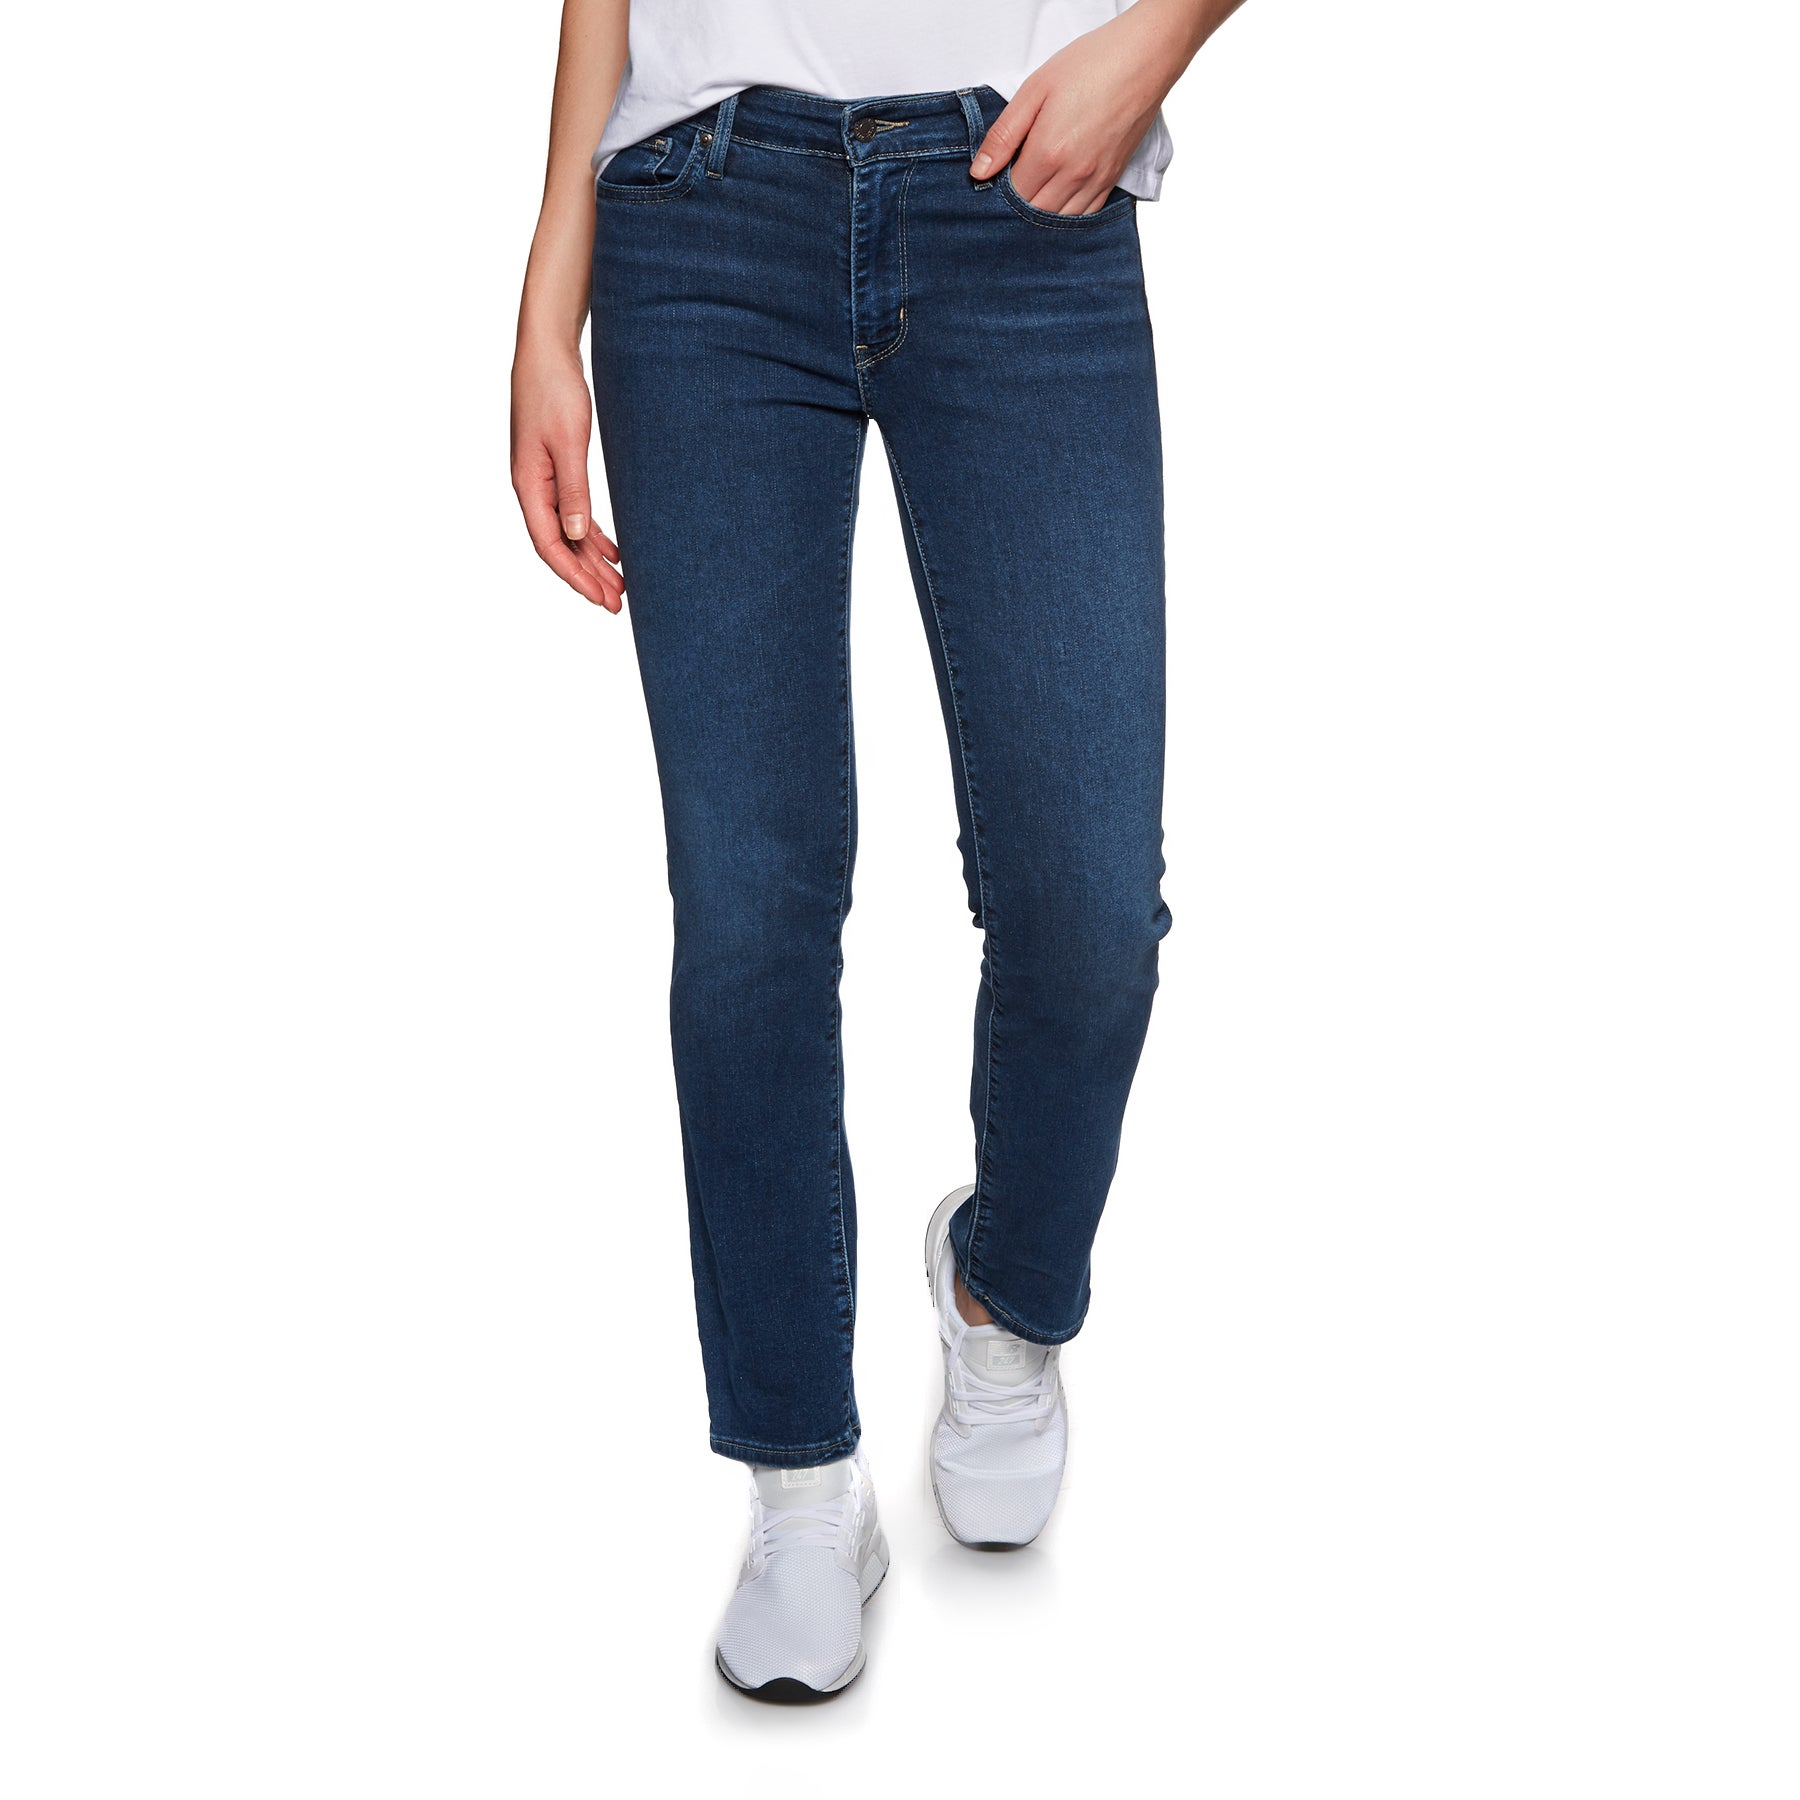 Levis 712 Slim Womens Jeans - Read Between The Lines